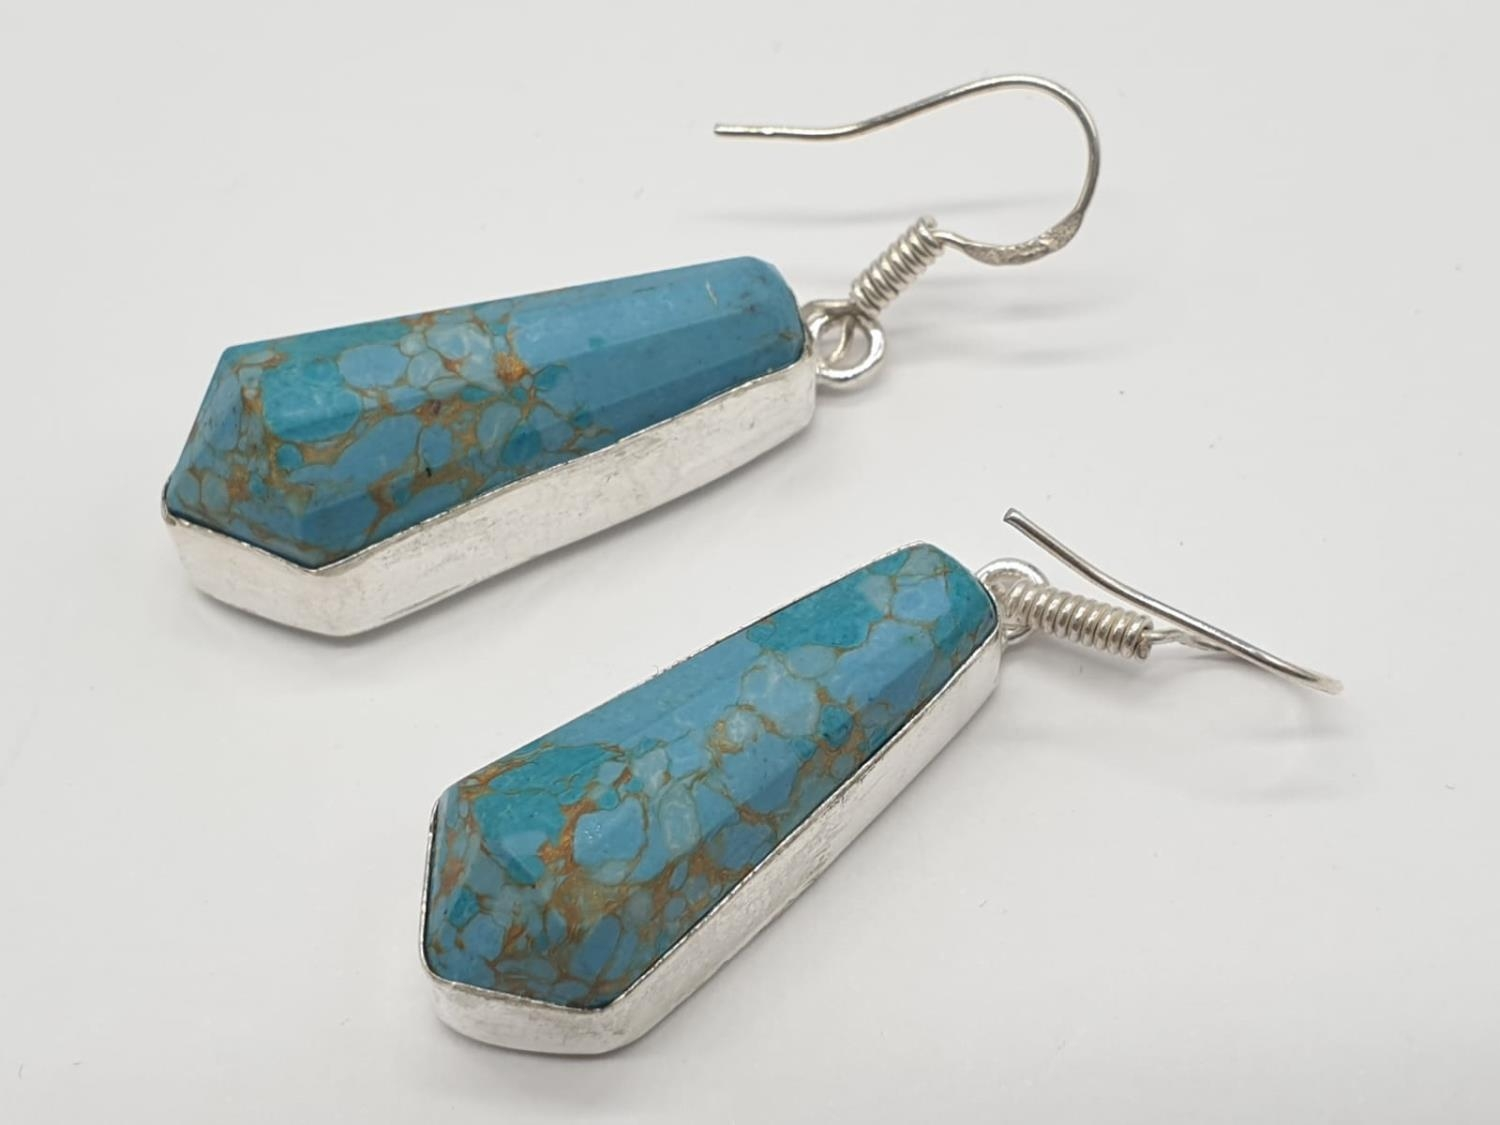 A Pharaonic style necklace and earrings set with light brown-gold veined turquoise obelisks and - Image 17 of 24